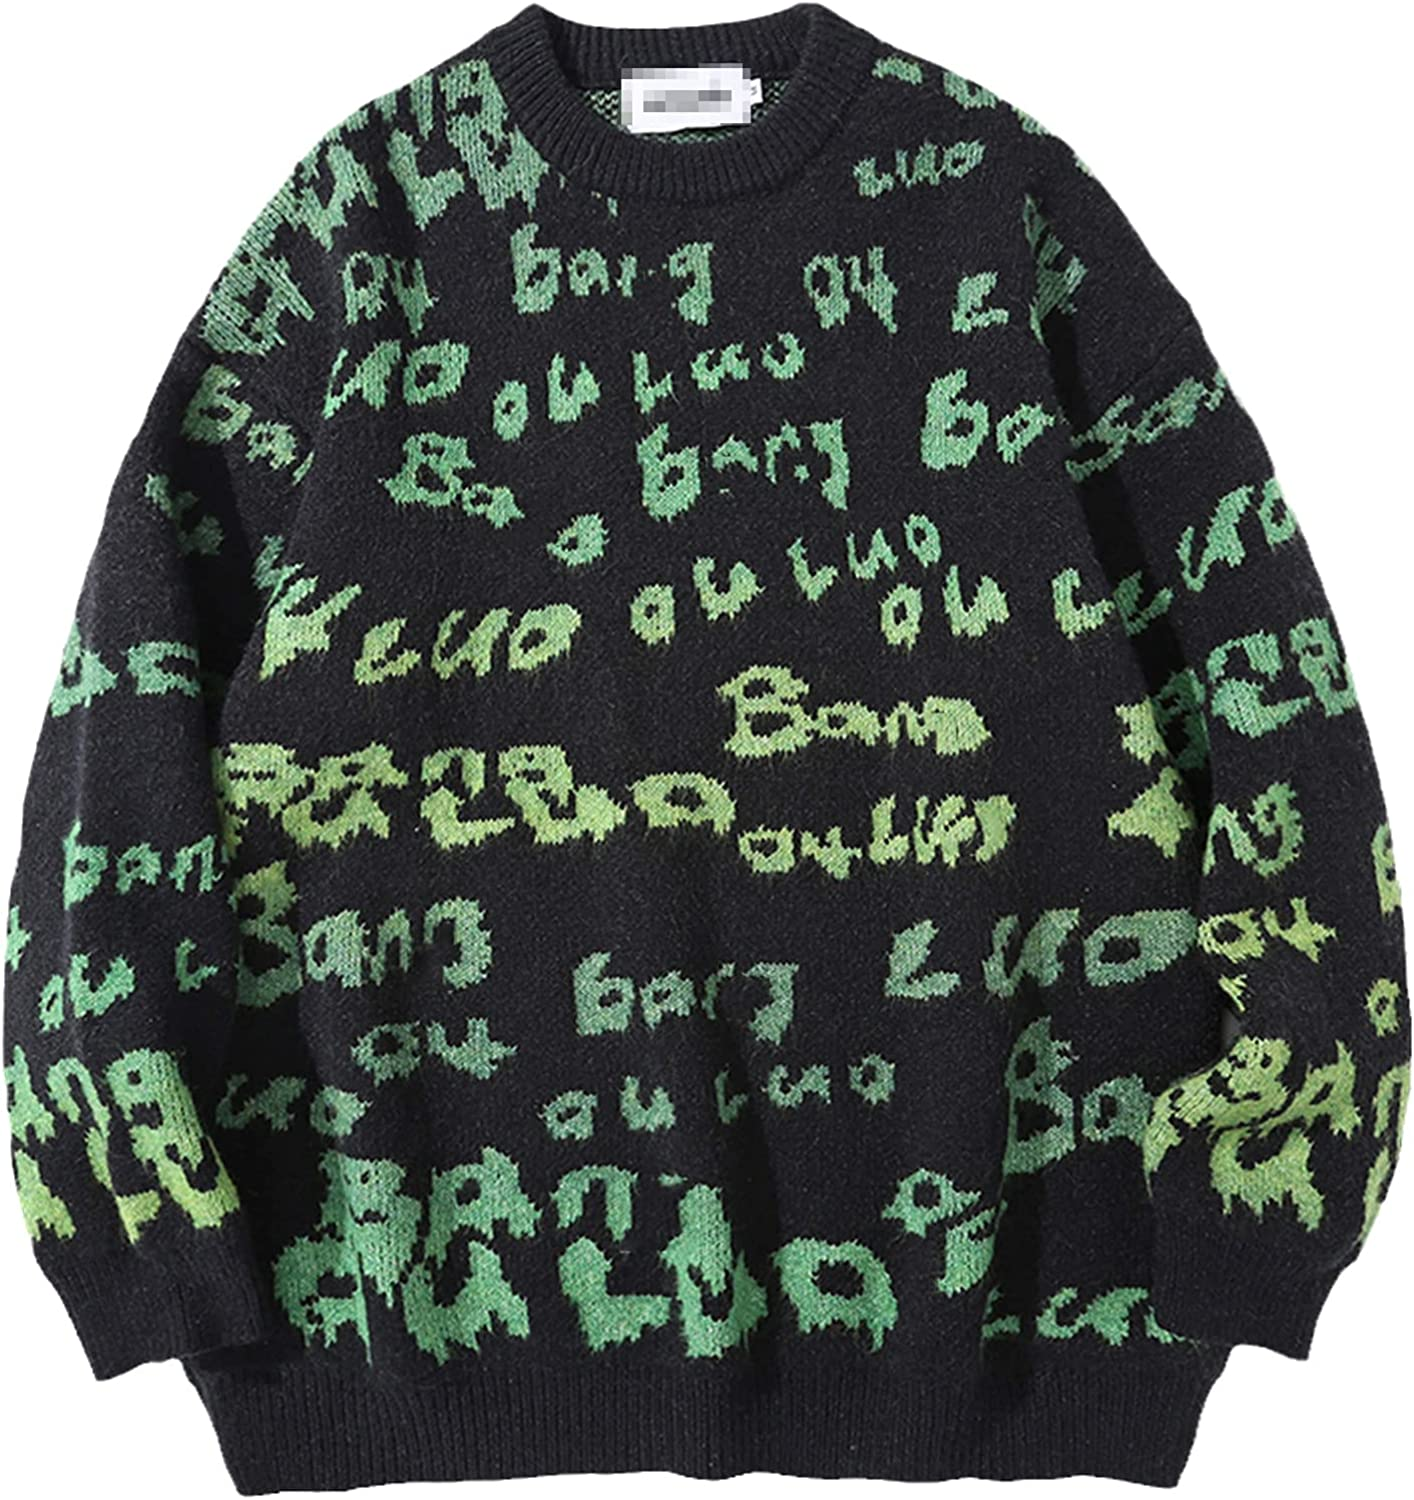 LKIUGVV Men Hip Hop Knitted Jumper Sweaters Letter Full Print Streetwear Harajuku Autumn Oversize Casual Fashion Pullovers